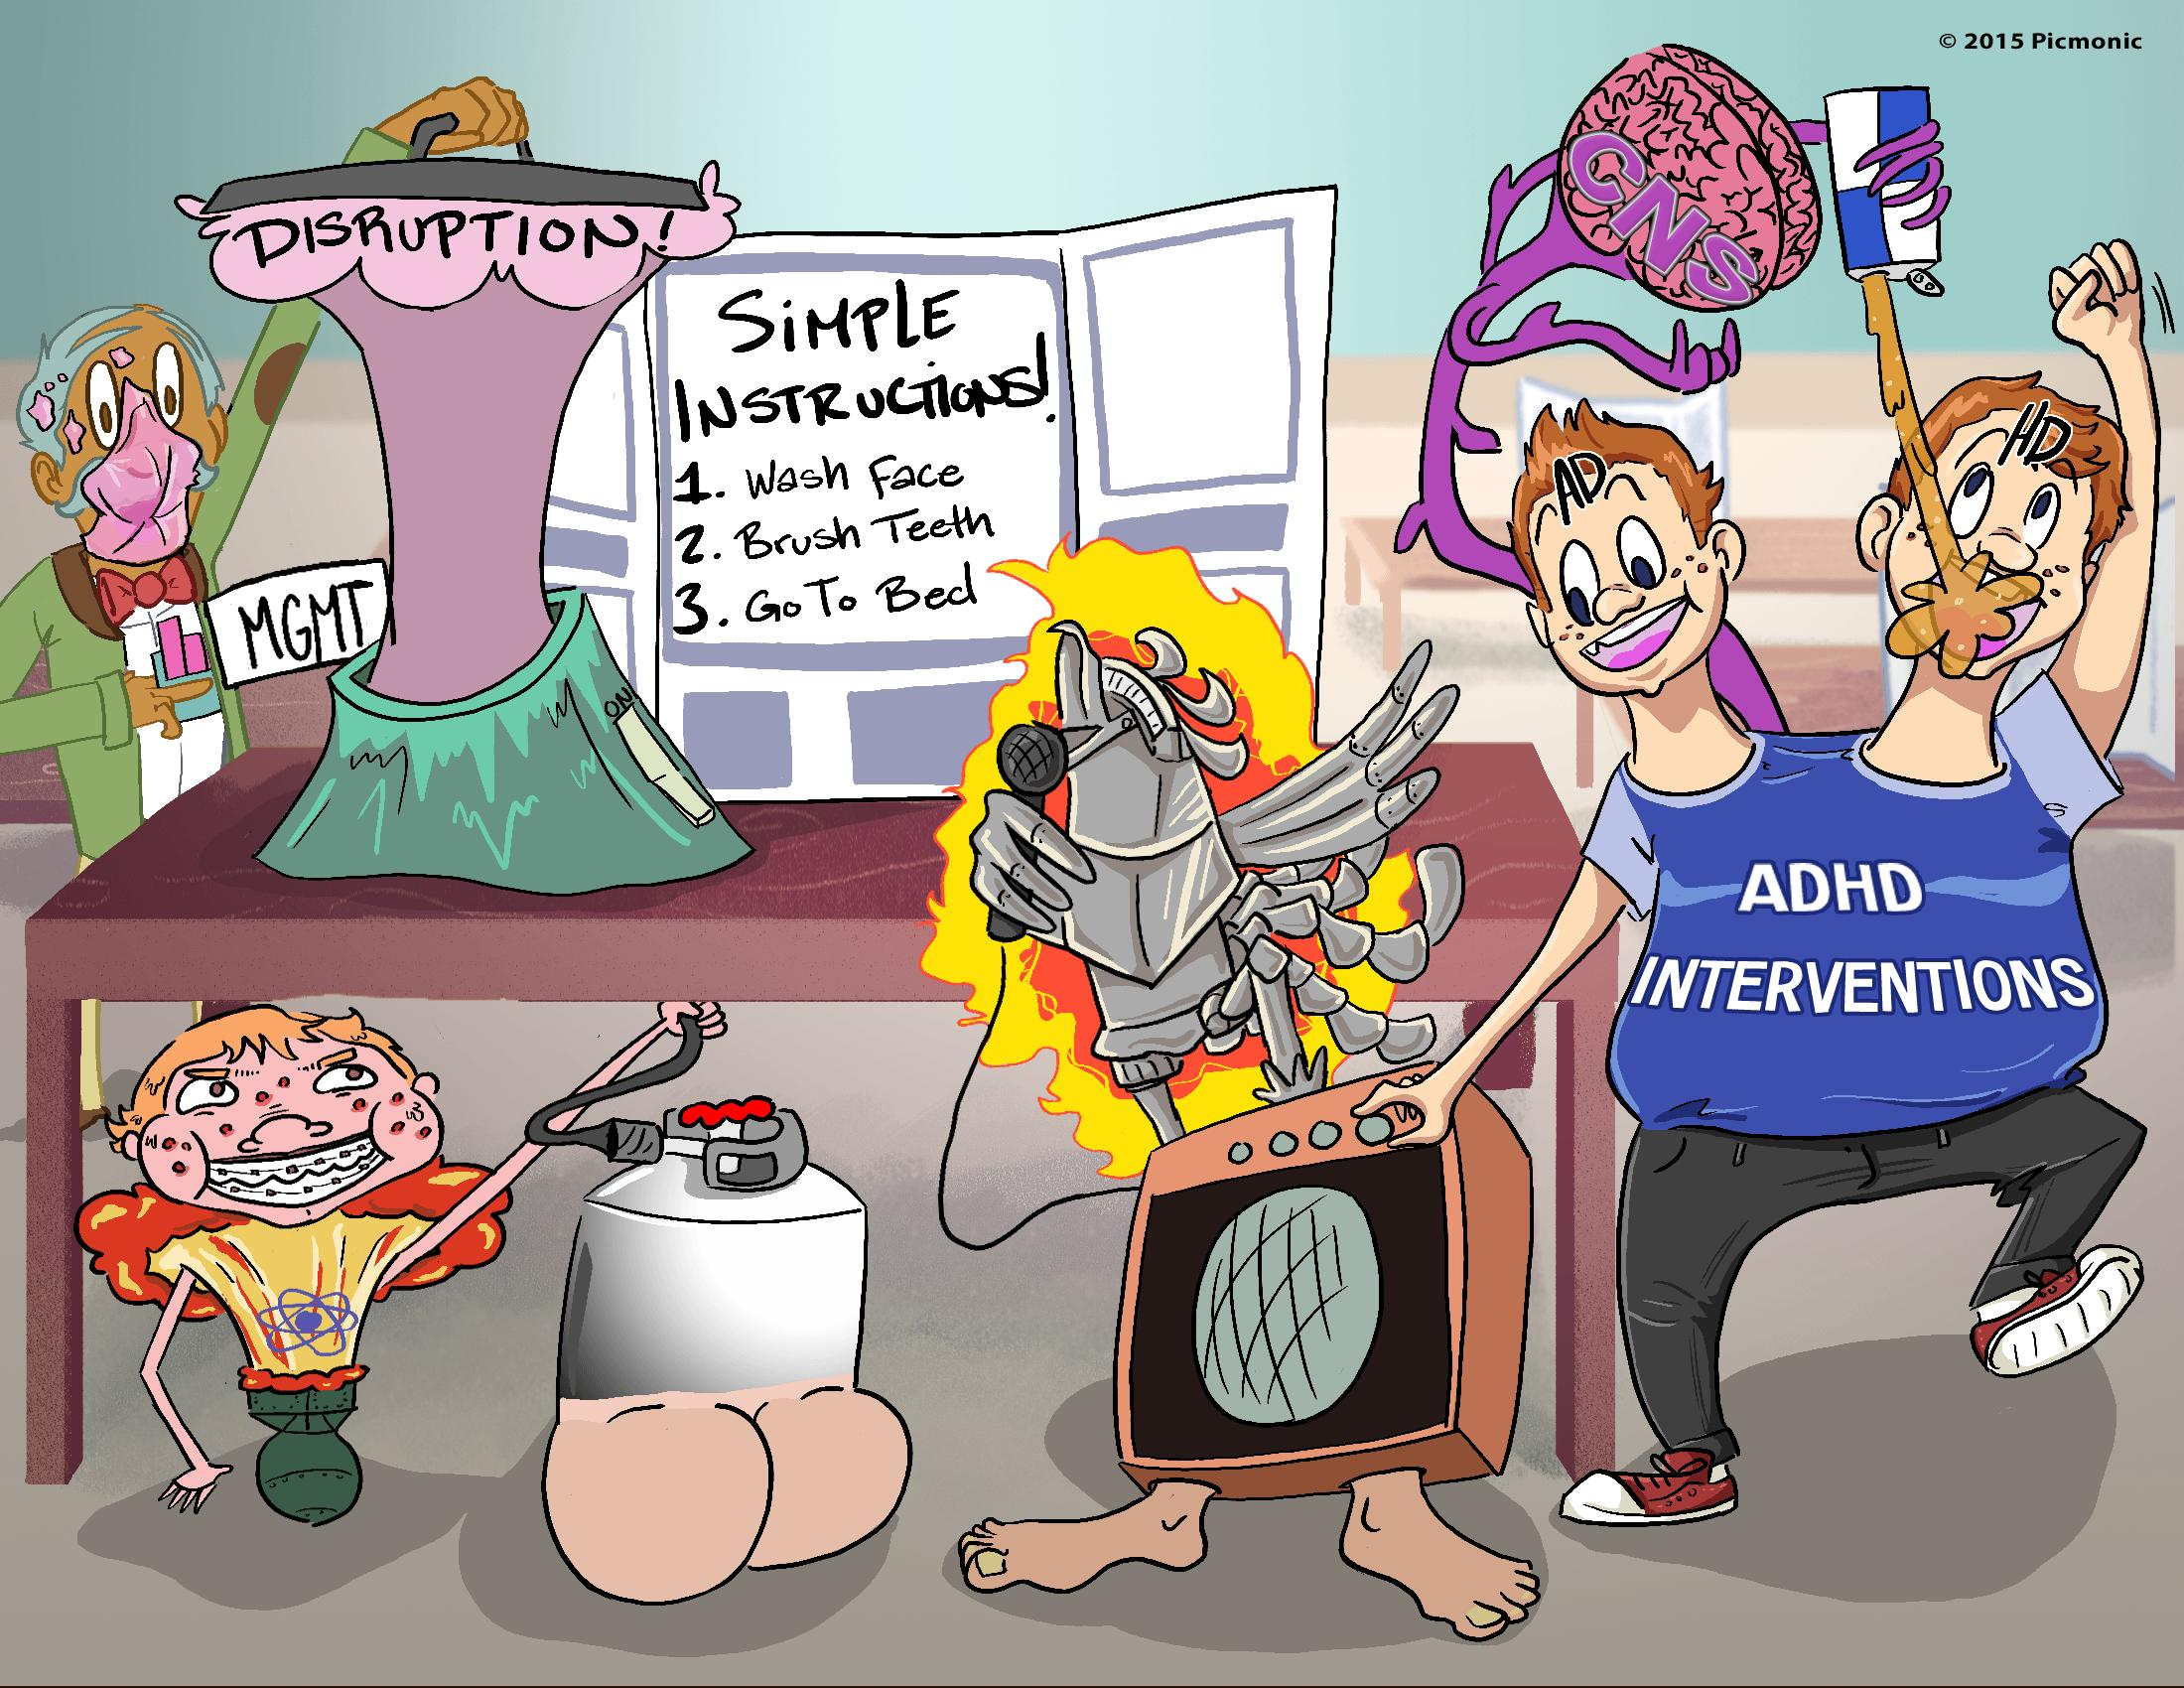 Attention-Deficit Hyperactivity Disorder (ADHD) Interventions